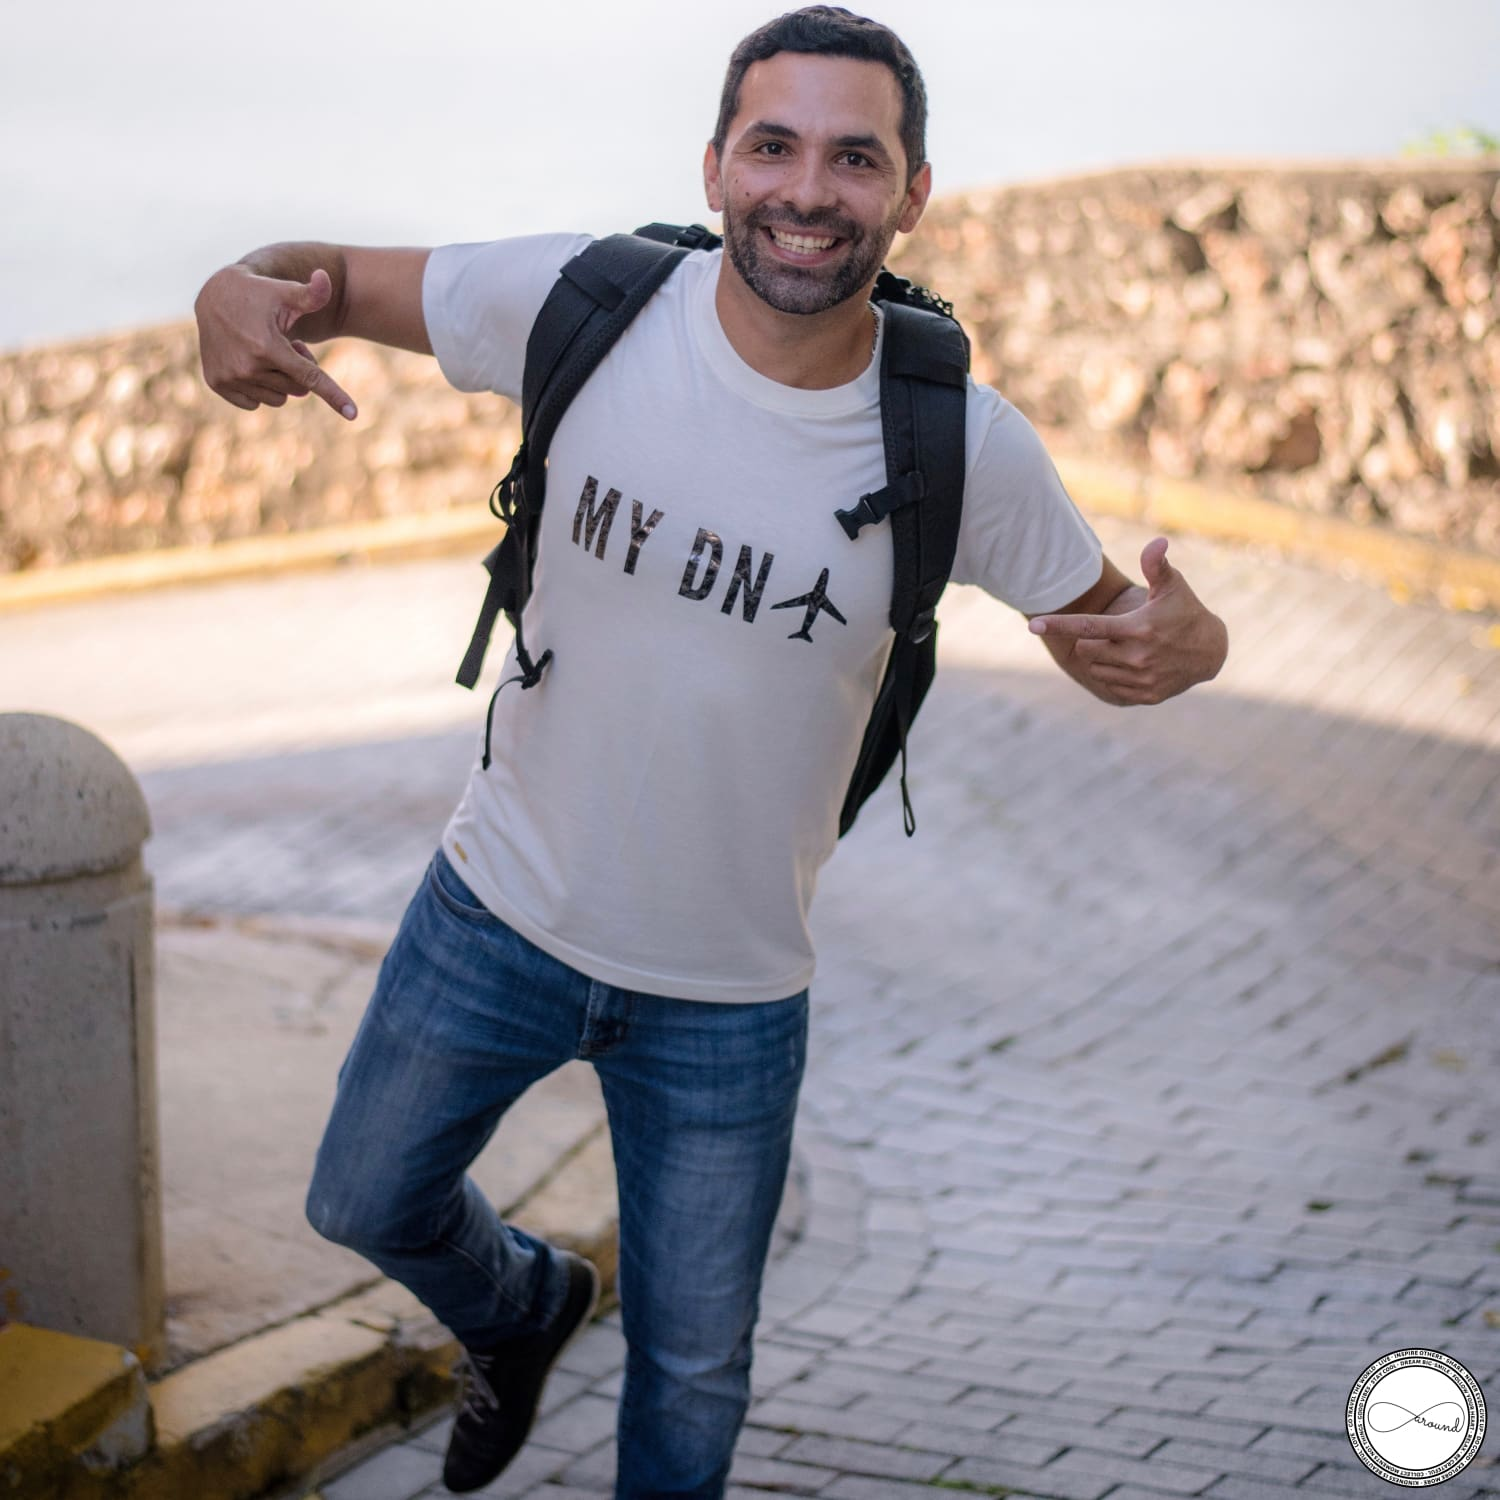 Mochileando MY DNA travel tshirt by Around Eco, soft t shirt, travel outfit, fairtrade clothing, organic cotton tee,tee shop